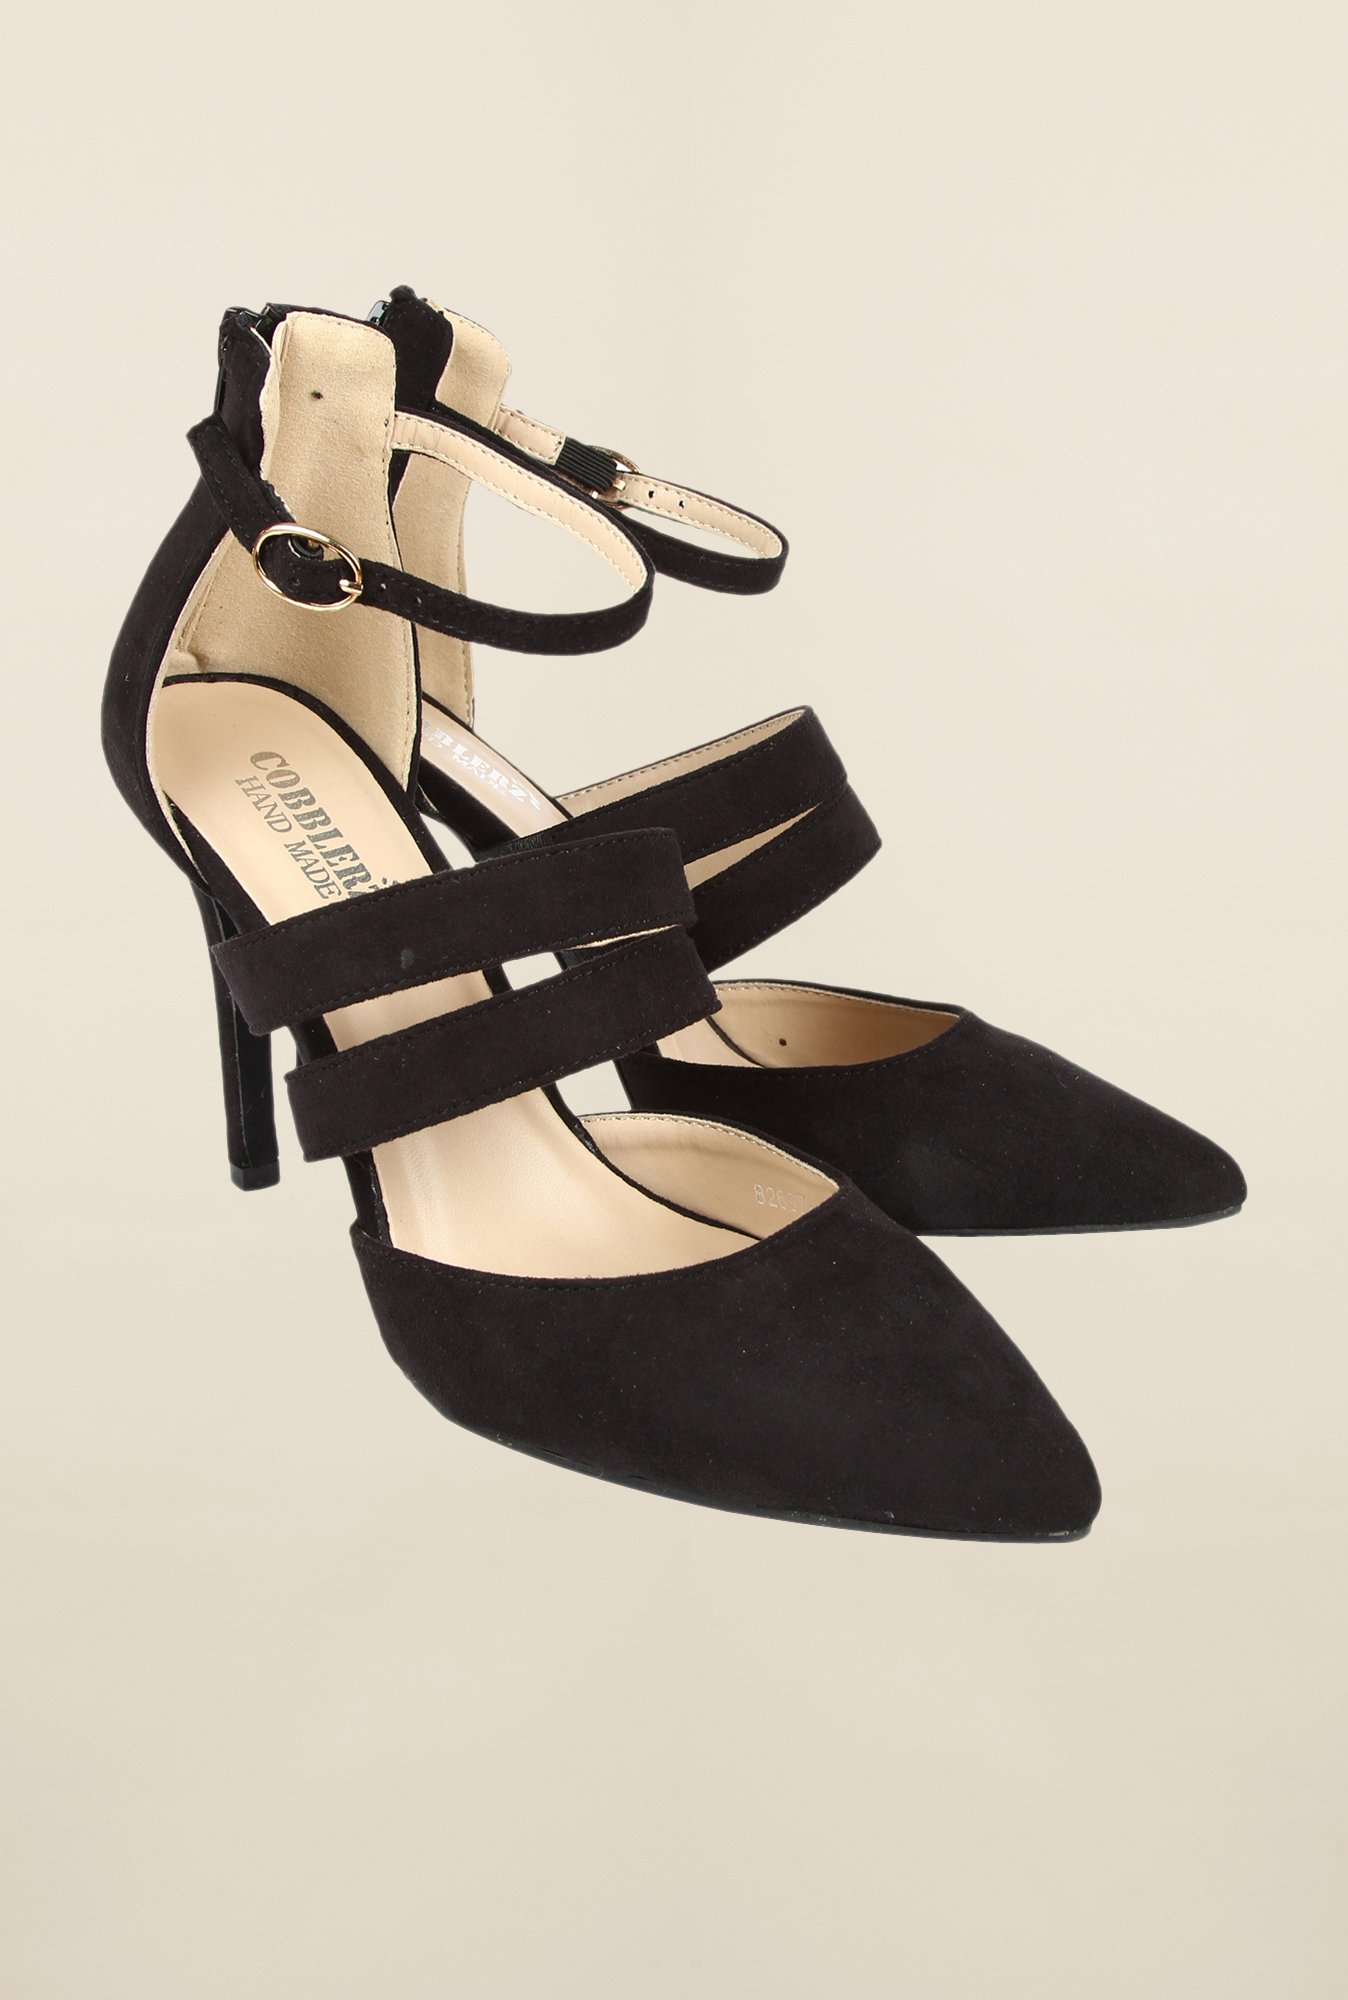 Cobblerz Black Stilettos Sandals